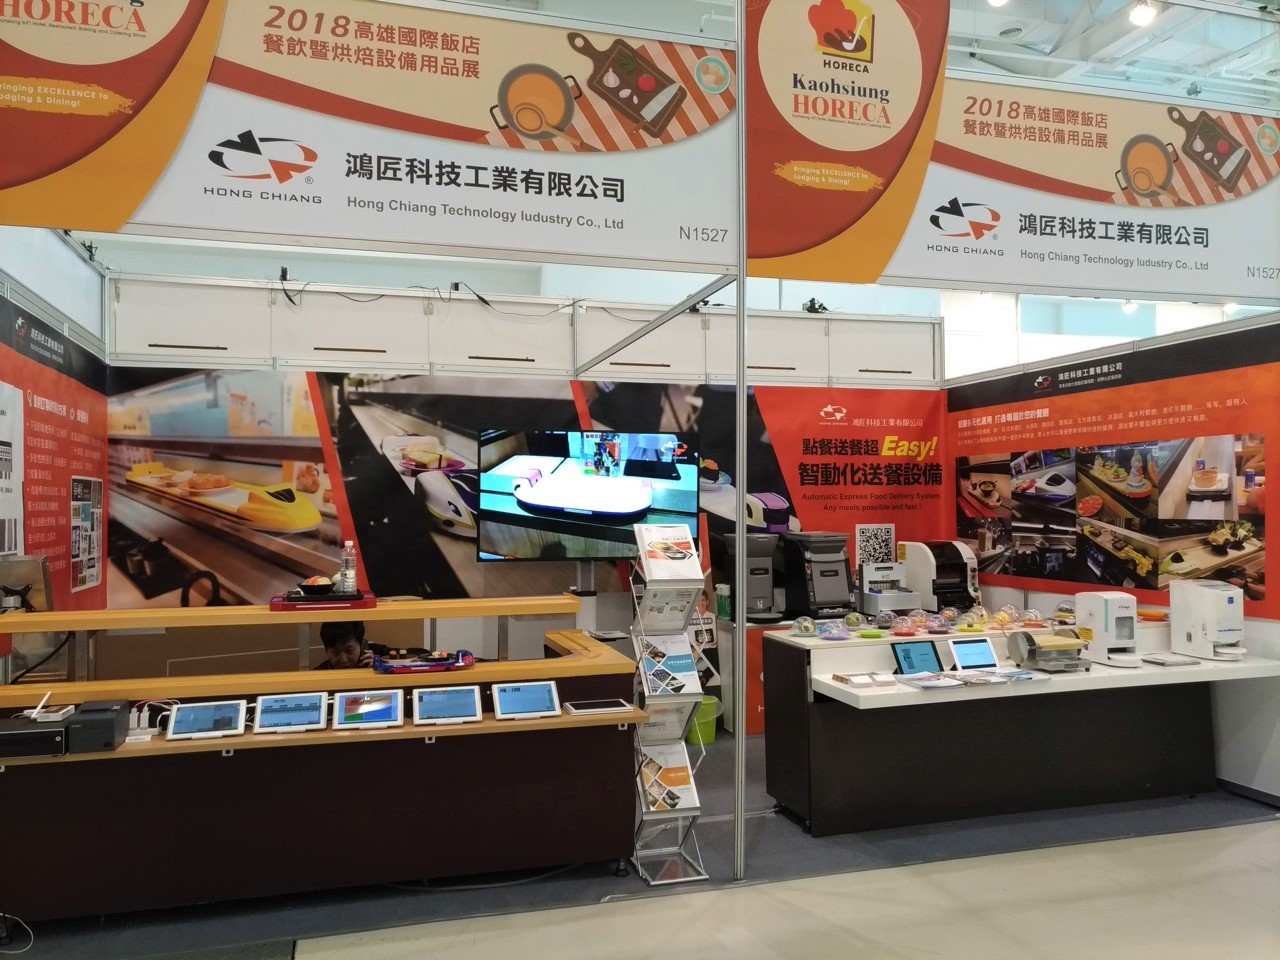 Kaohsiung Int'l Hotel, Restaurant, Baking and Catering Show